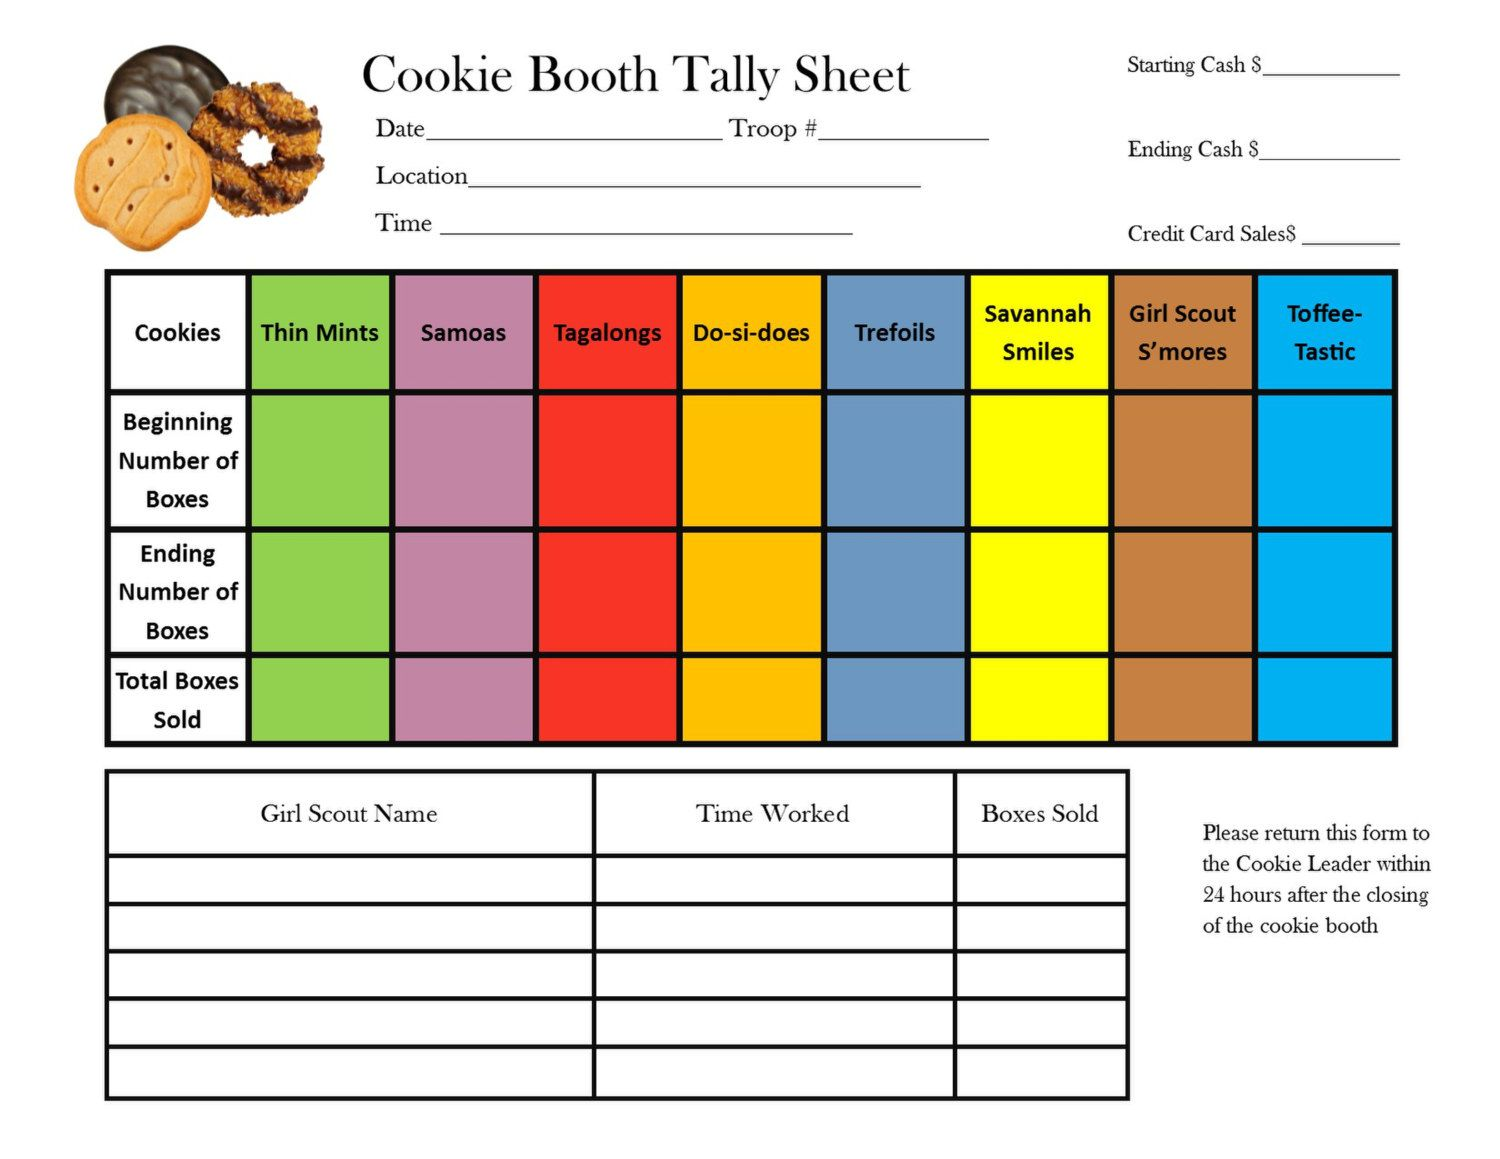 Girl Scout Cookie Booth Tally Sheet By Troopdesigns On